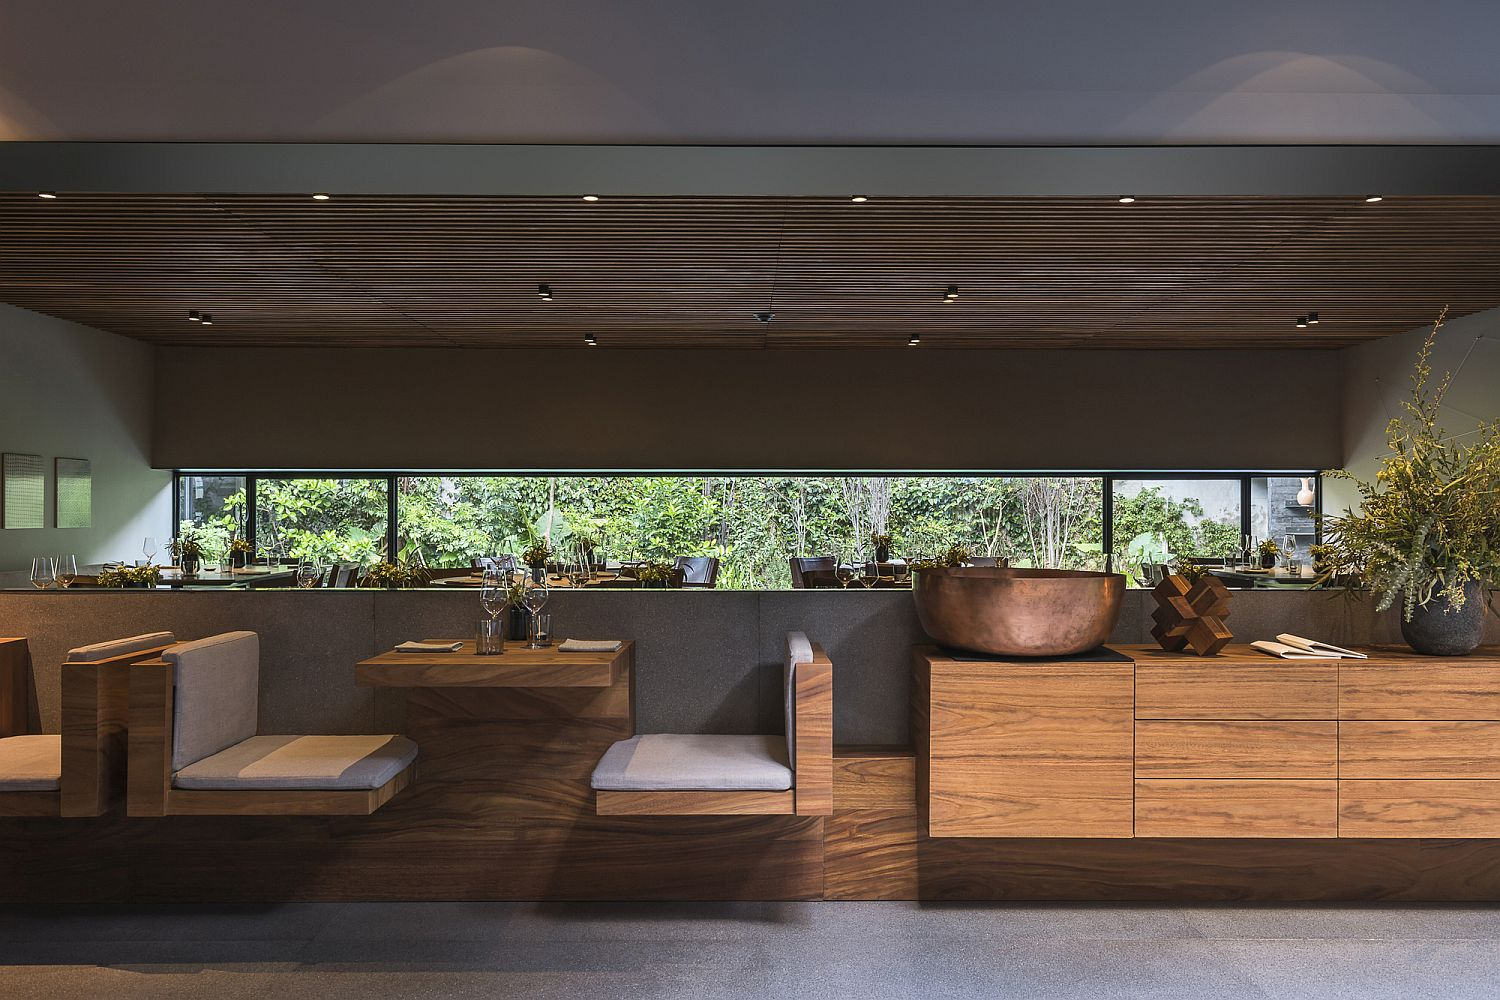 Wooden-seating-along-with-the-new-ceiling-creates-an-intimate-setting